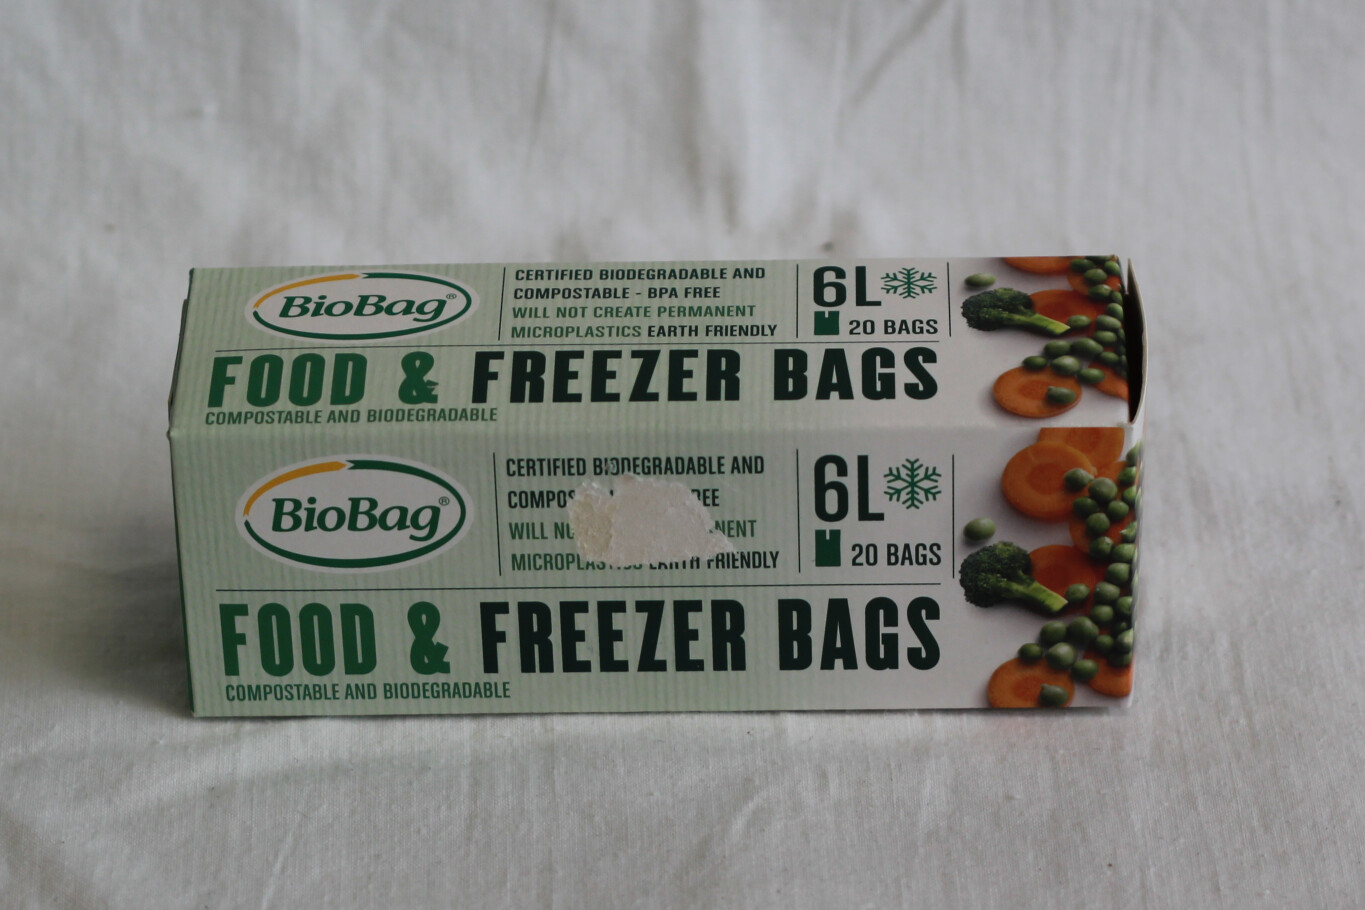 BioBag 6L Food & Freezer Bags